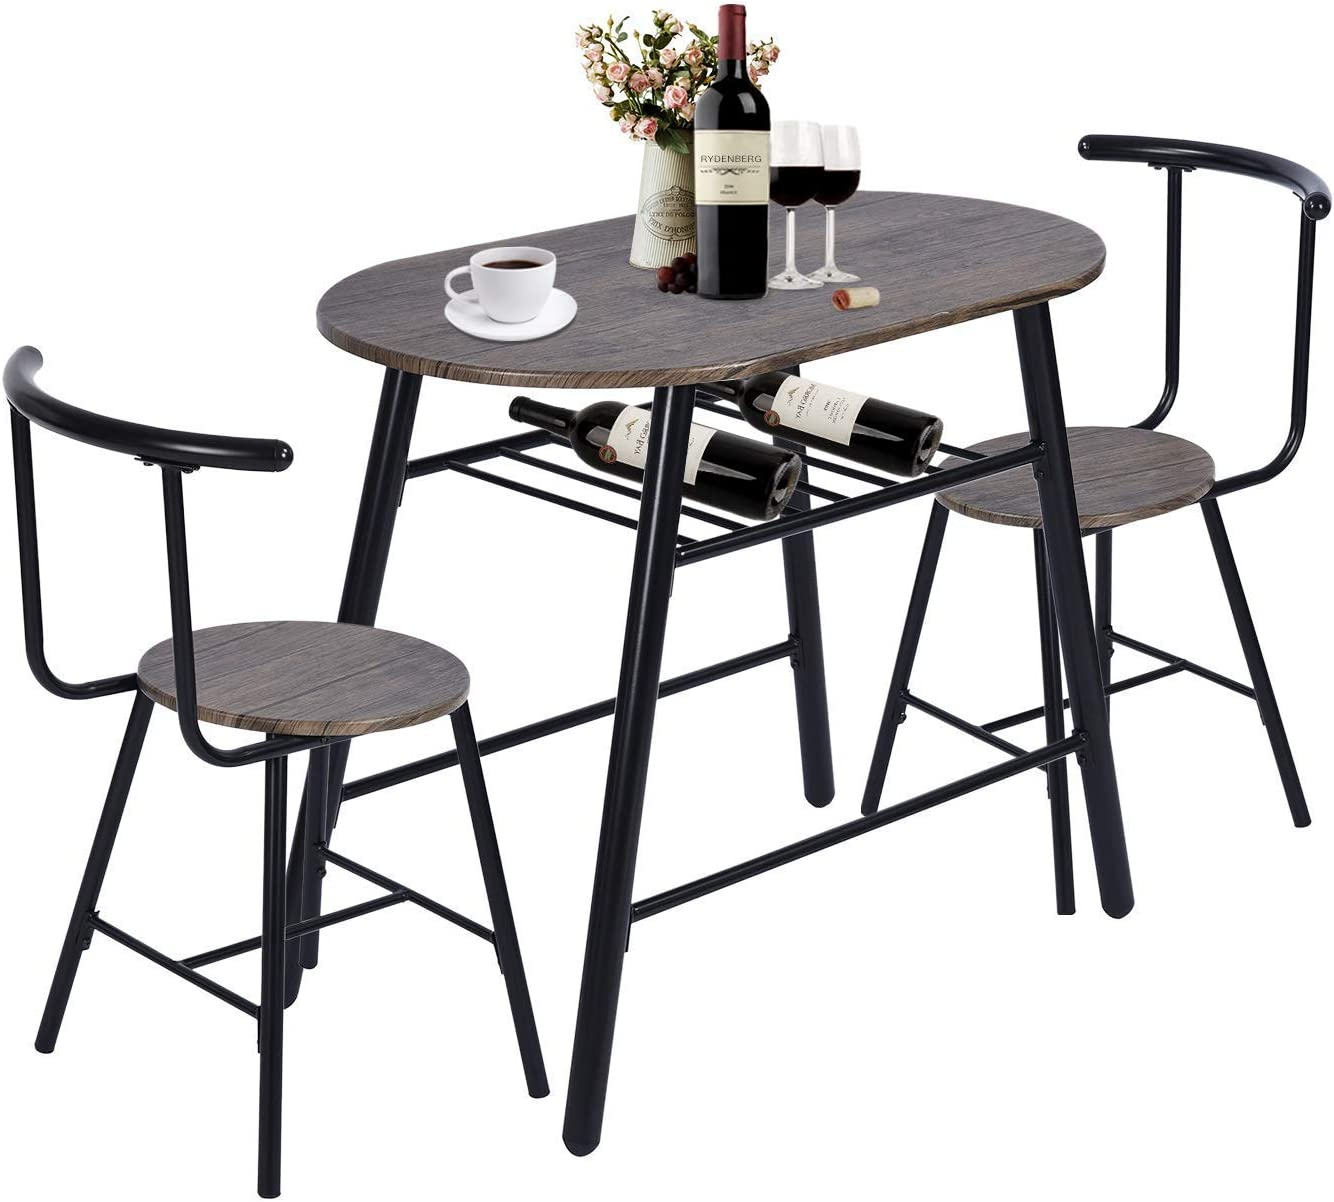 Buy GreenForest 9 Piece Dining Table and Chairs Set Modern ...